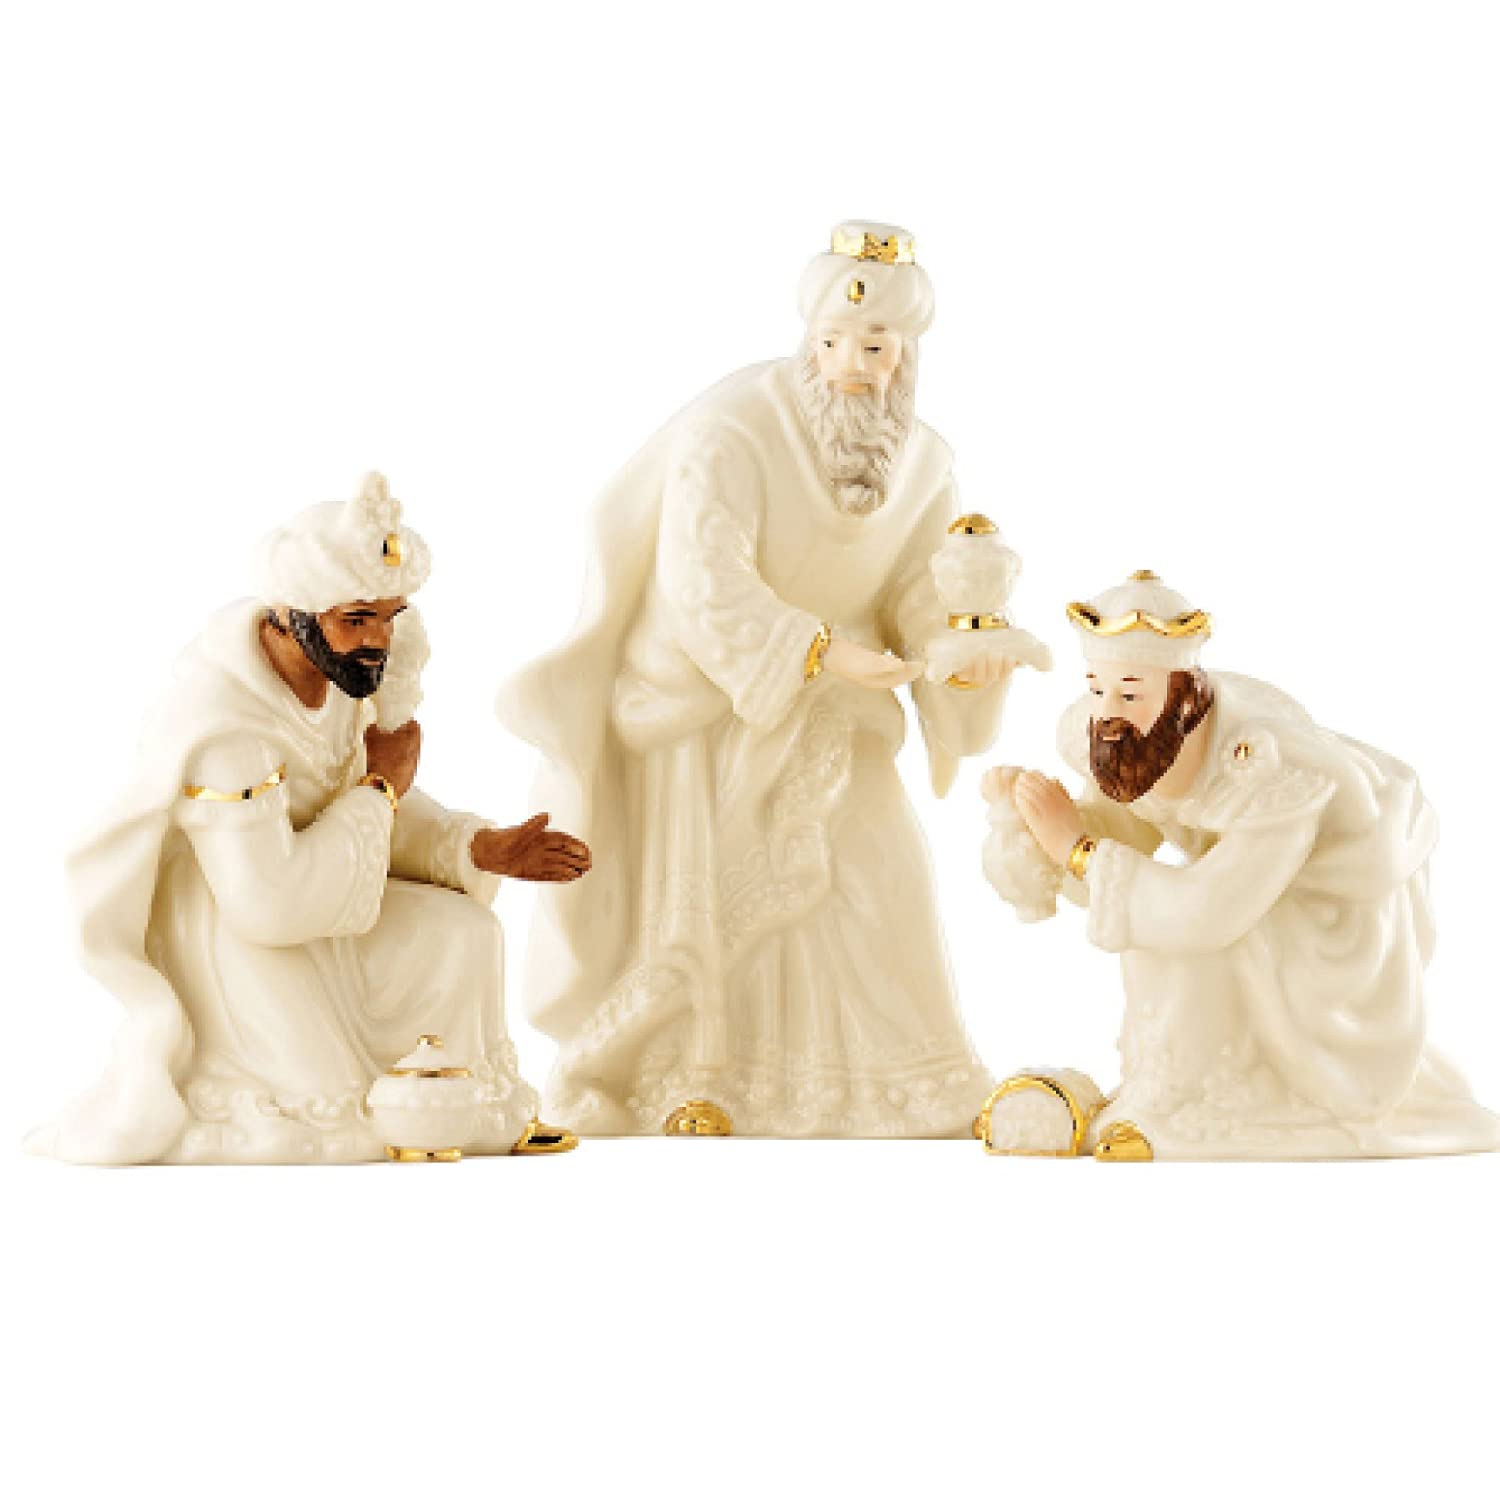 Amazon.com: Belleek Holiday Collection Three Kings Set: Home & Kitchen